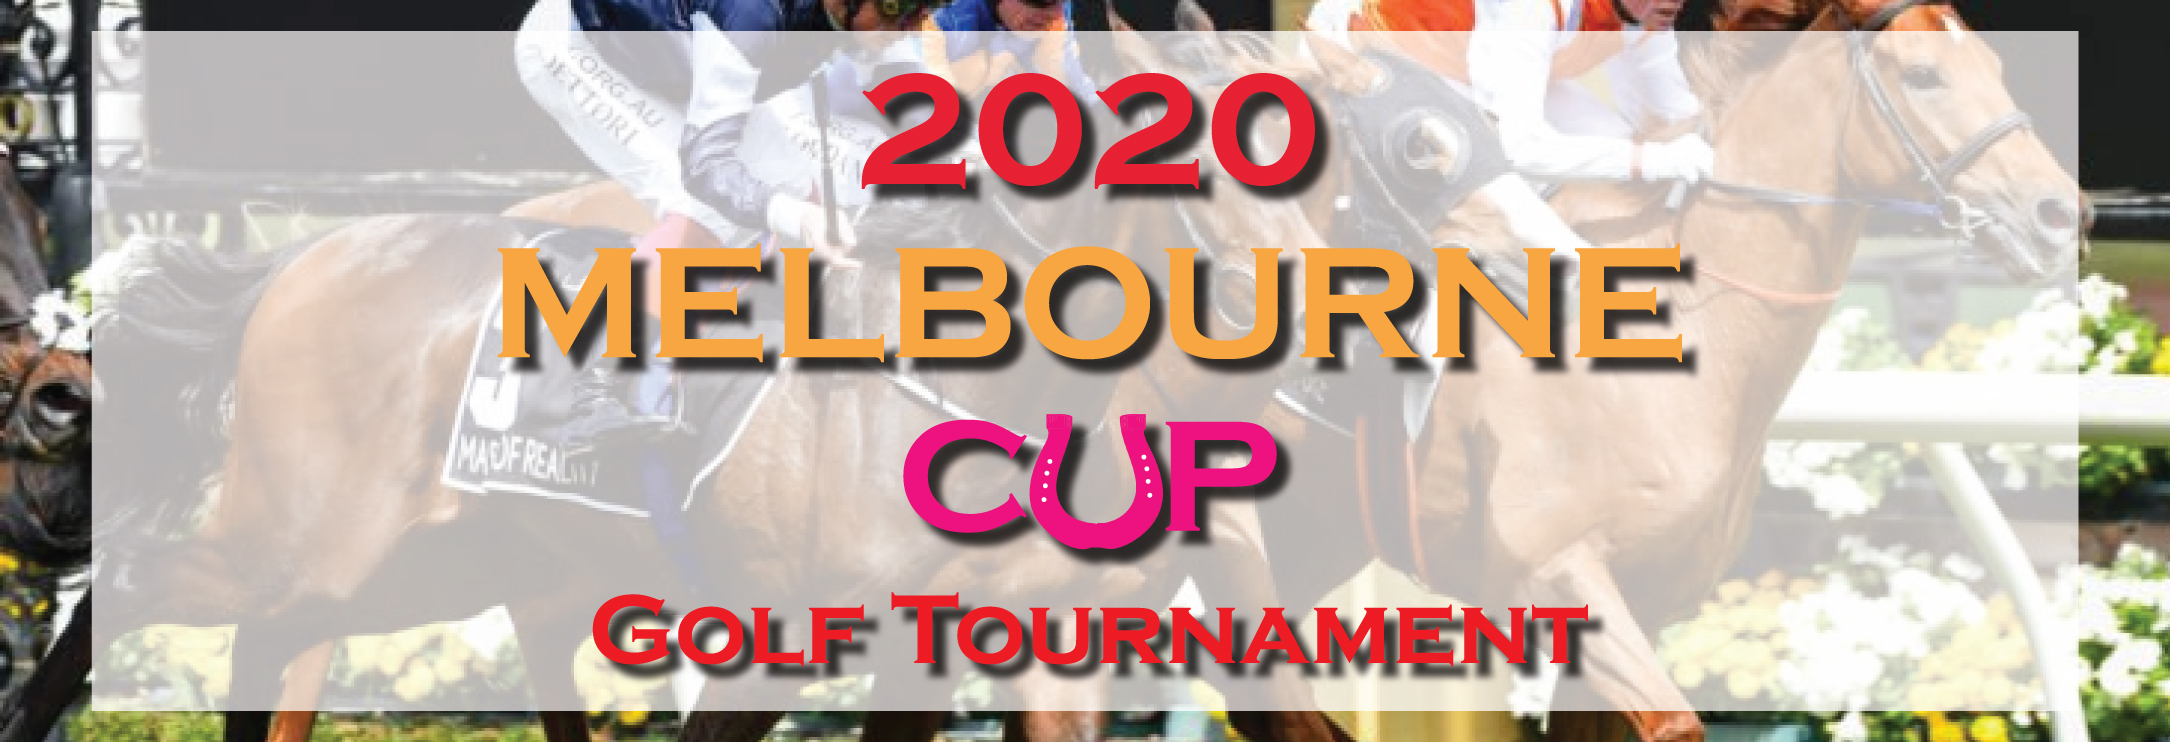 Melbourne-Cup-Tournament-BANNER-2020